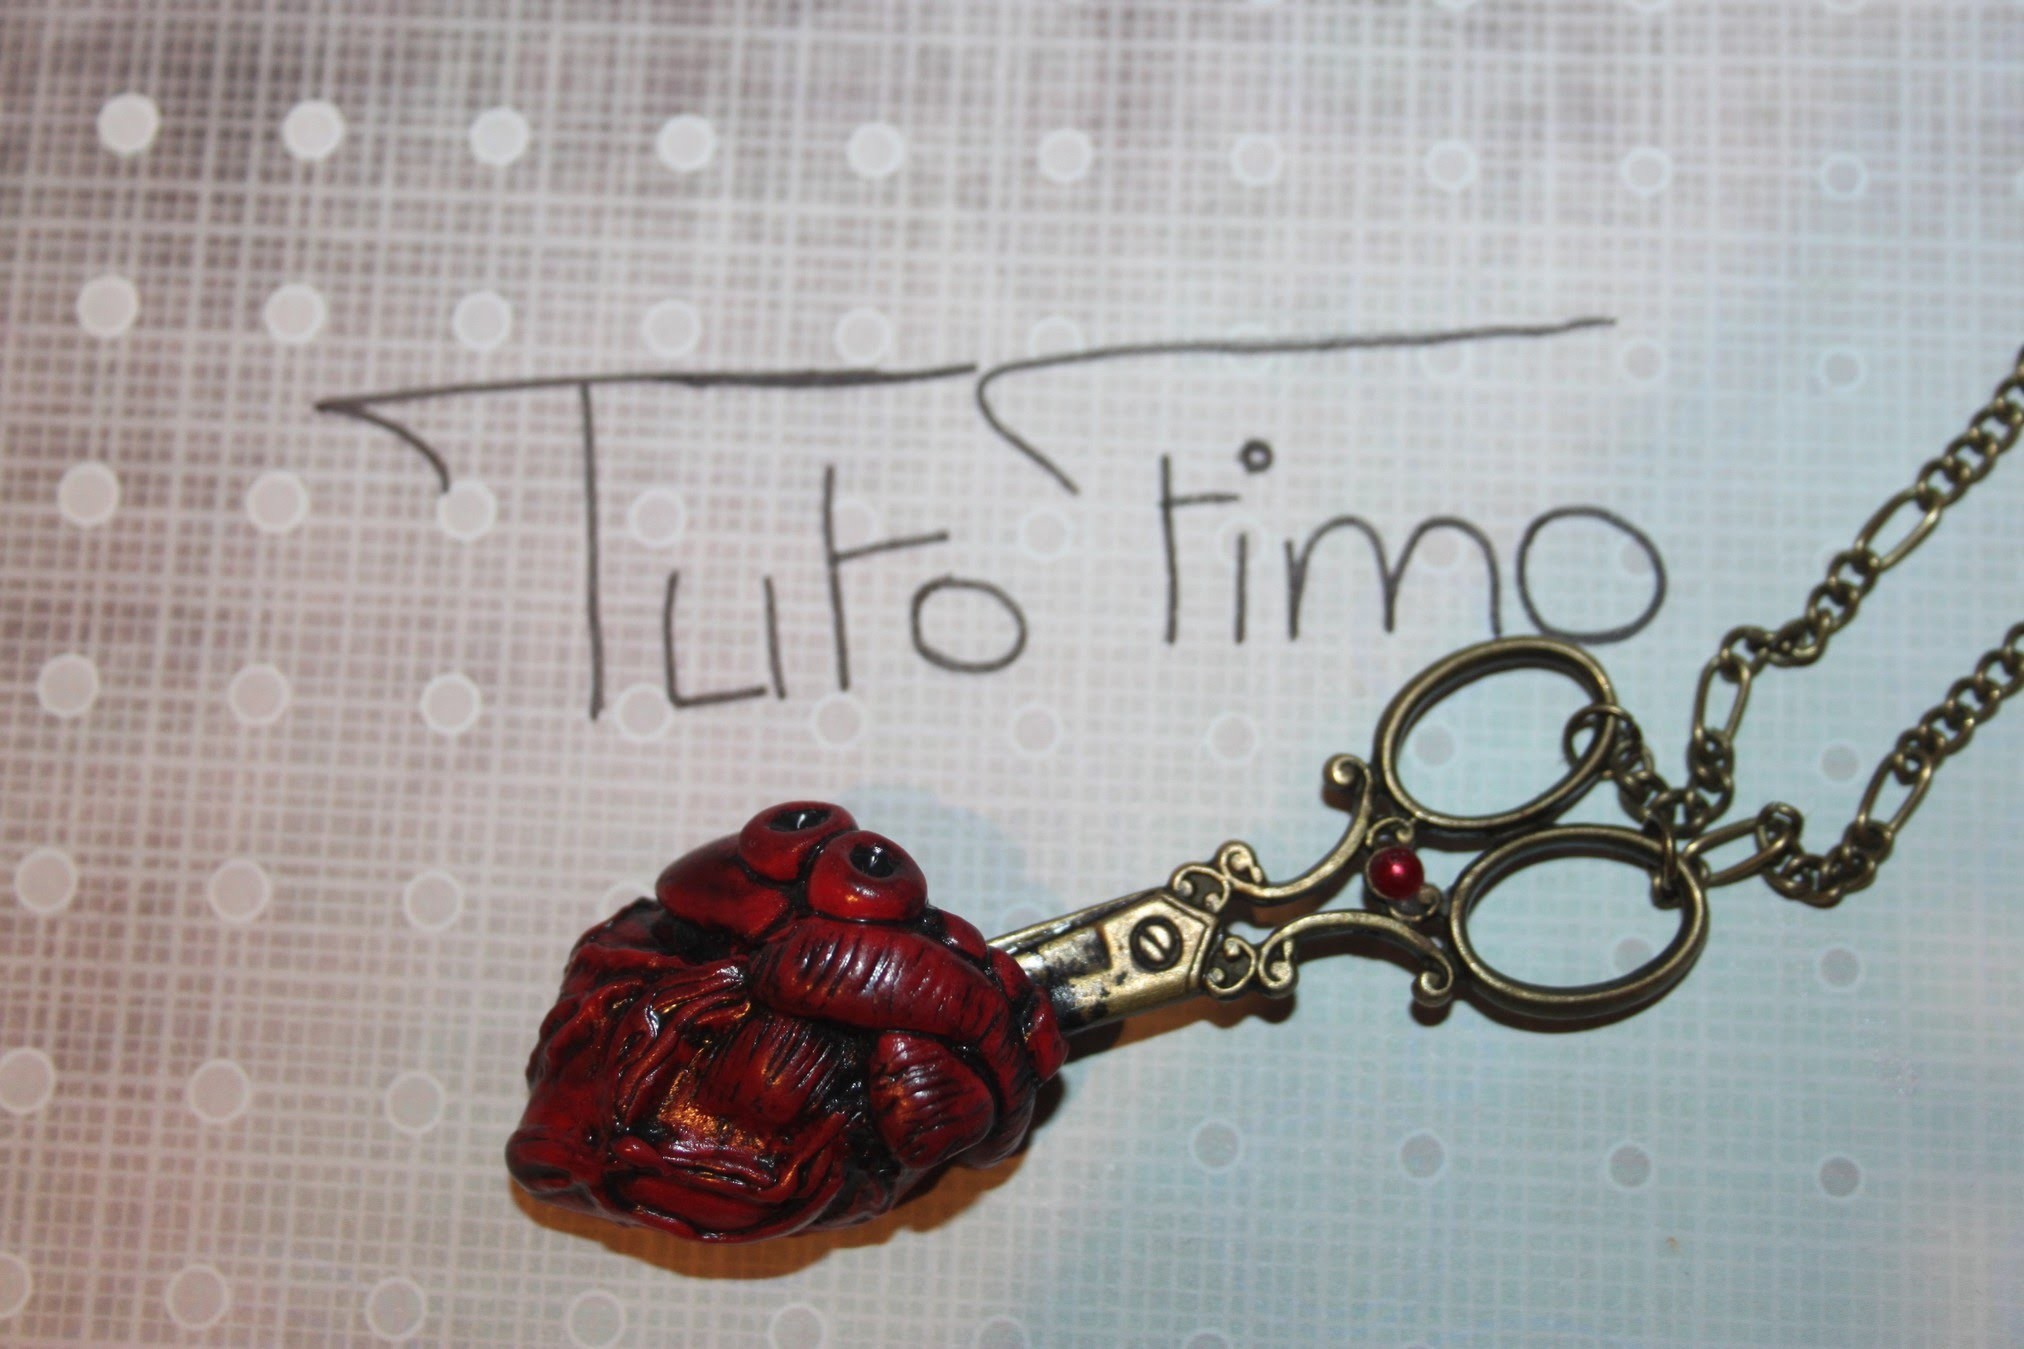 [♥✿ Tuto Fimo : Coeur humain ✿♥] ~ [♥✿ Polymer Clay Tutorial : Human Heart ✿♥]